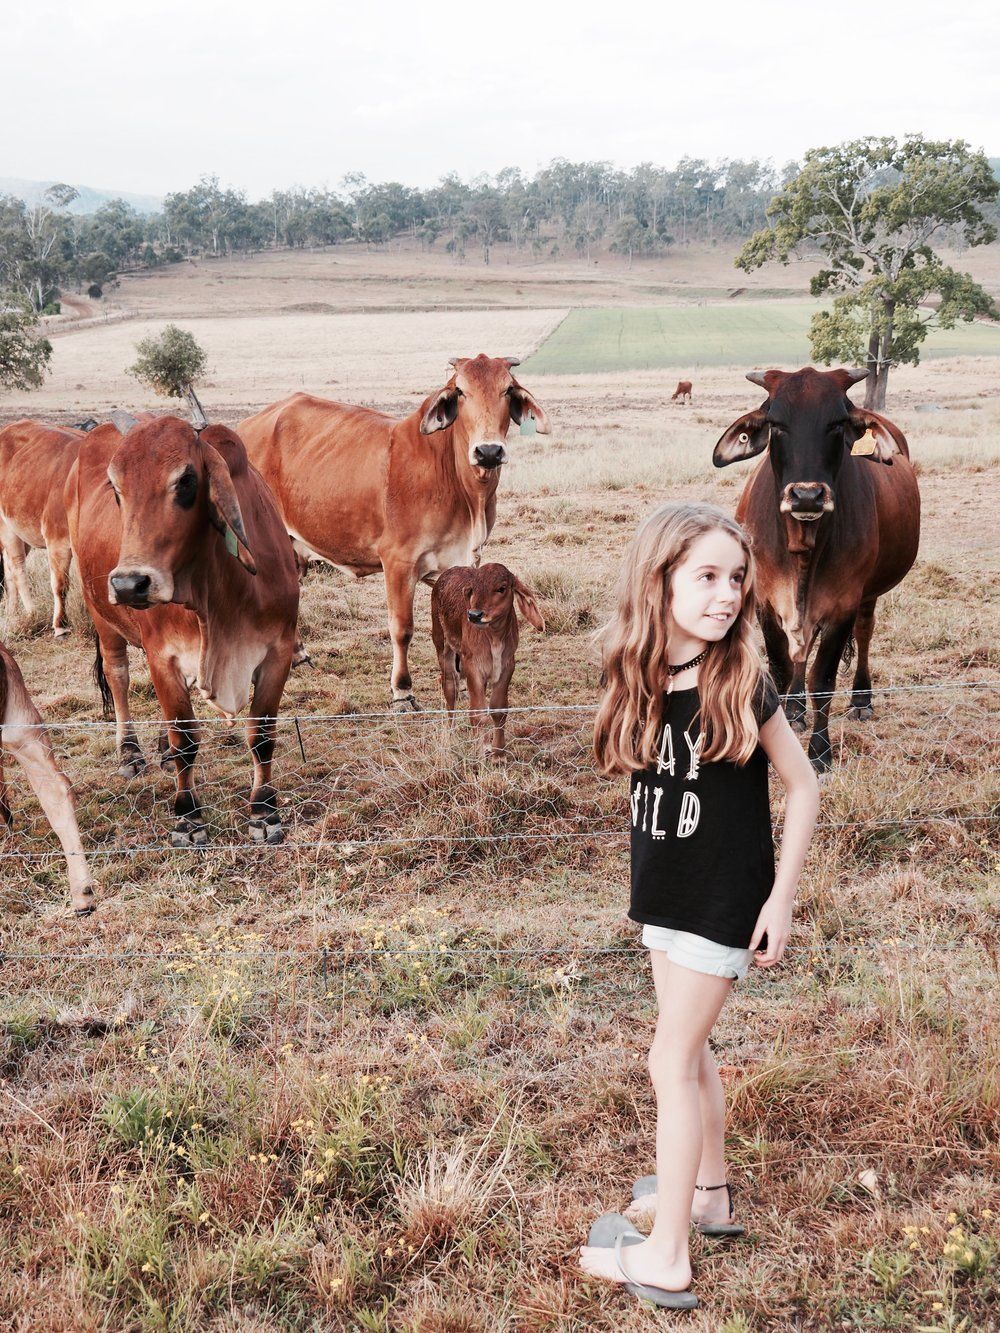 Ella loved picking oranges and feeding them to the super friendly cows. Who knew cows loved oranges?